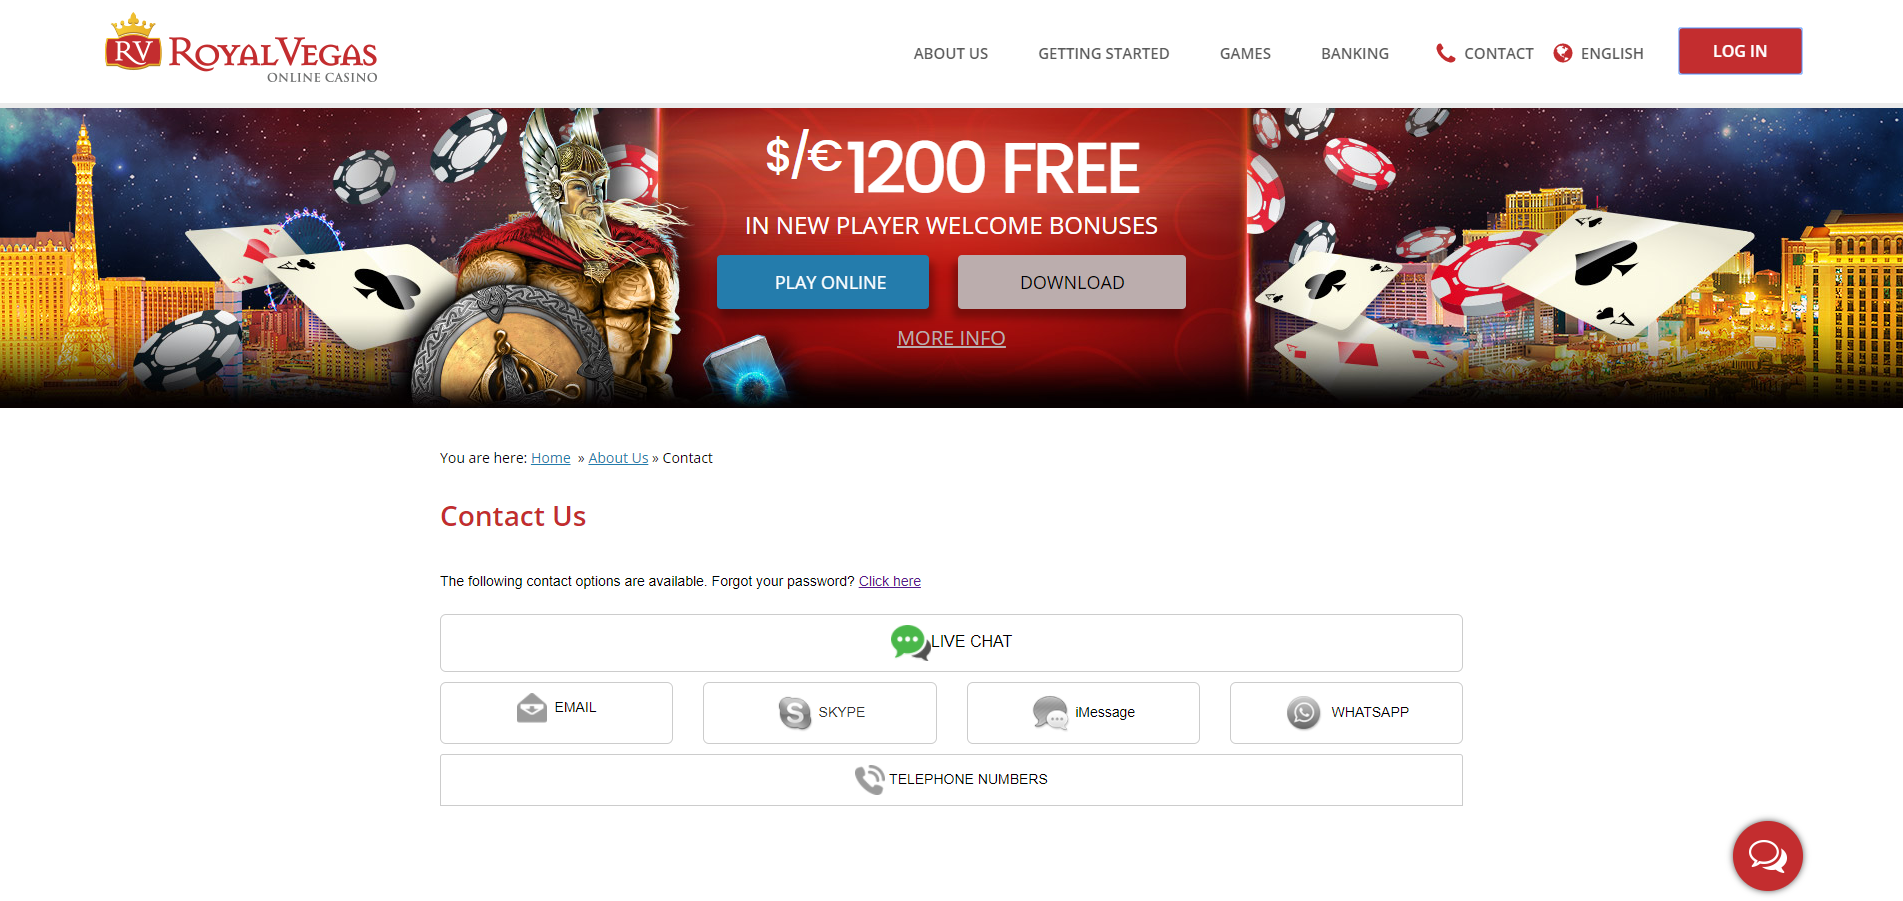 AceKingdom Casino Online Review With Promotions & Bonuses